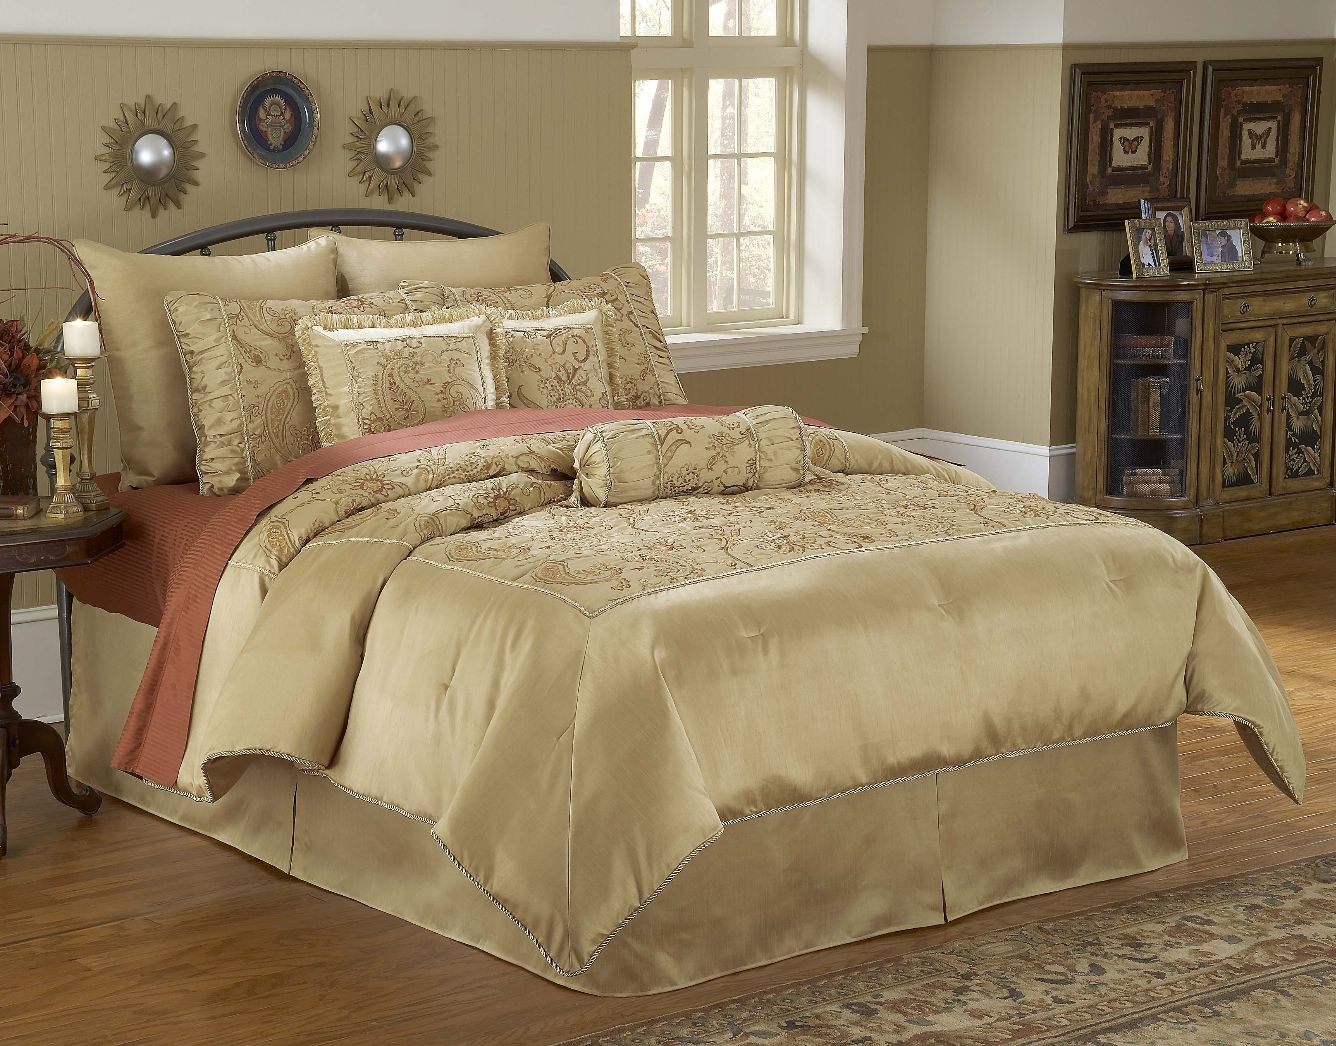 Belk Comforters | Luxury Comforter Sets | Cheap Comforter Sets Queen